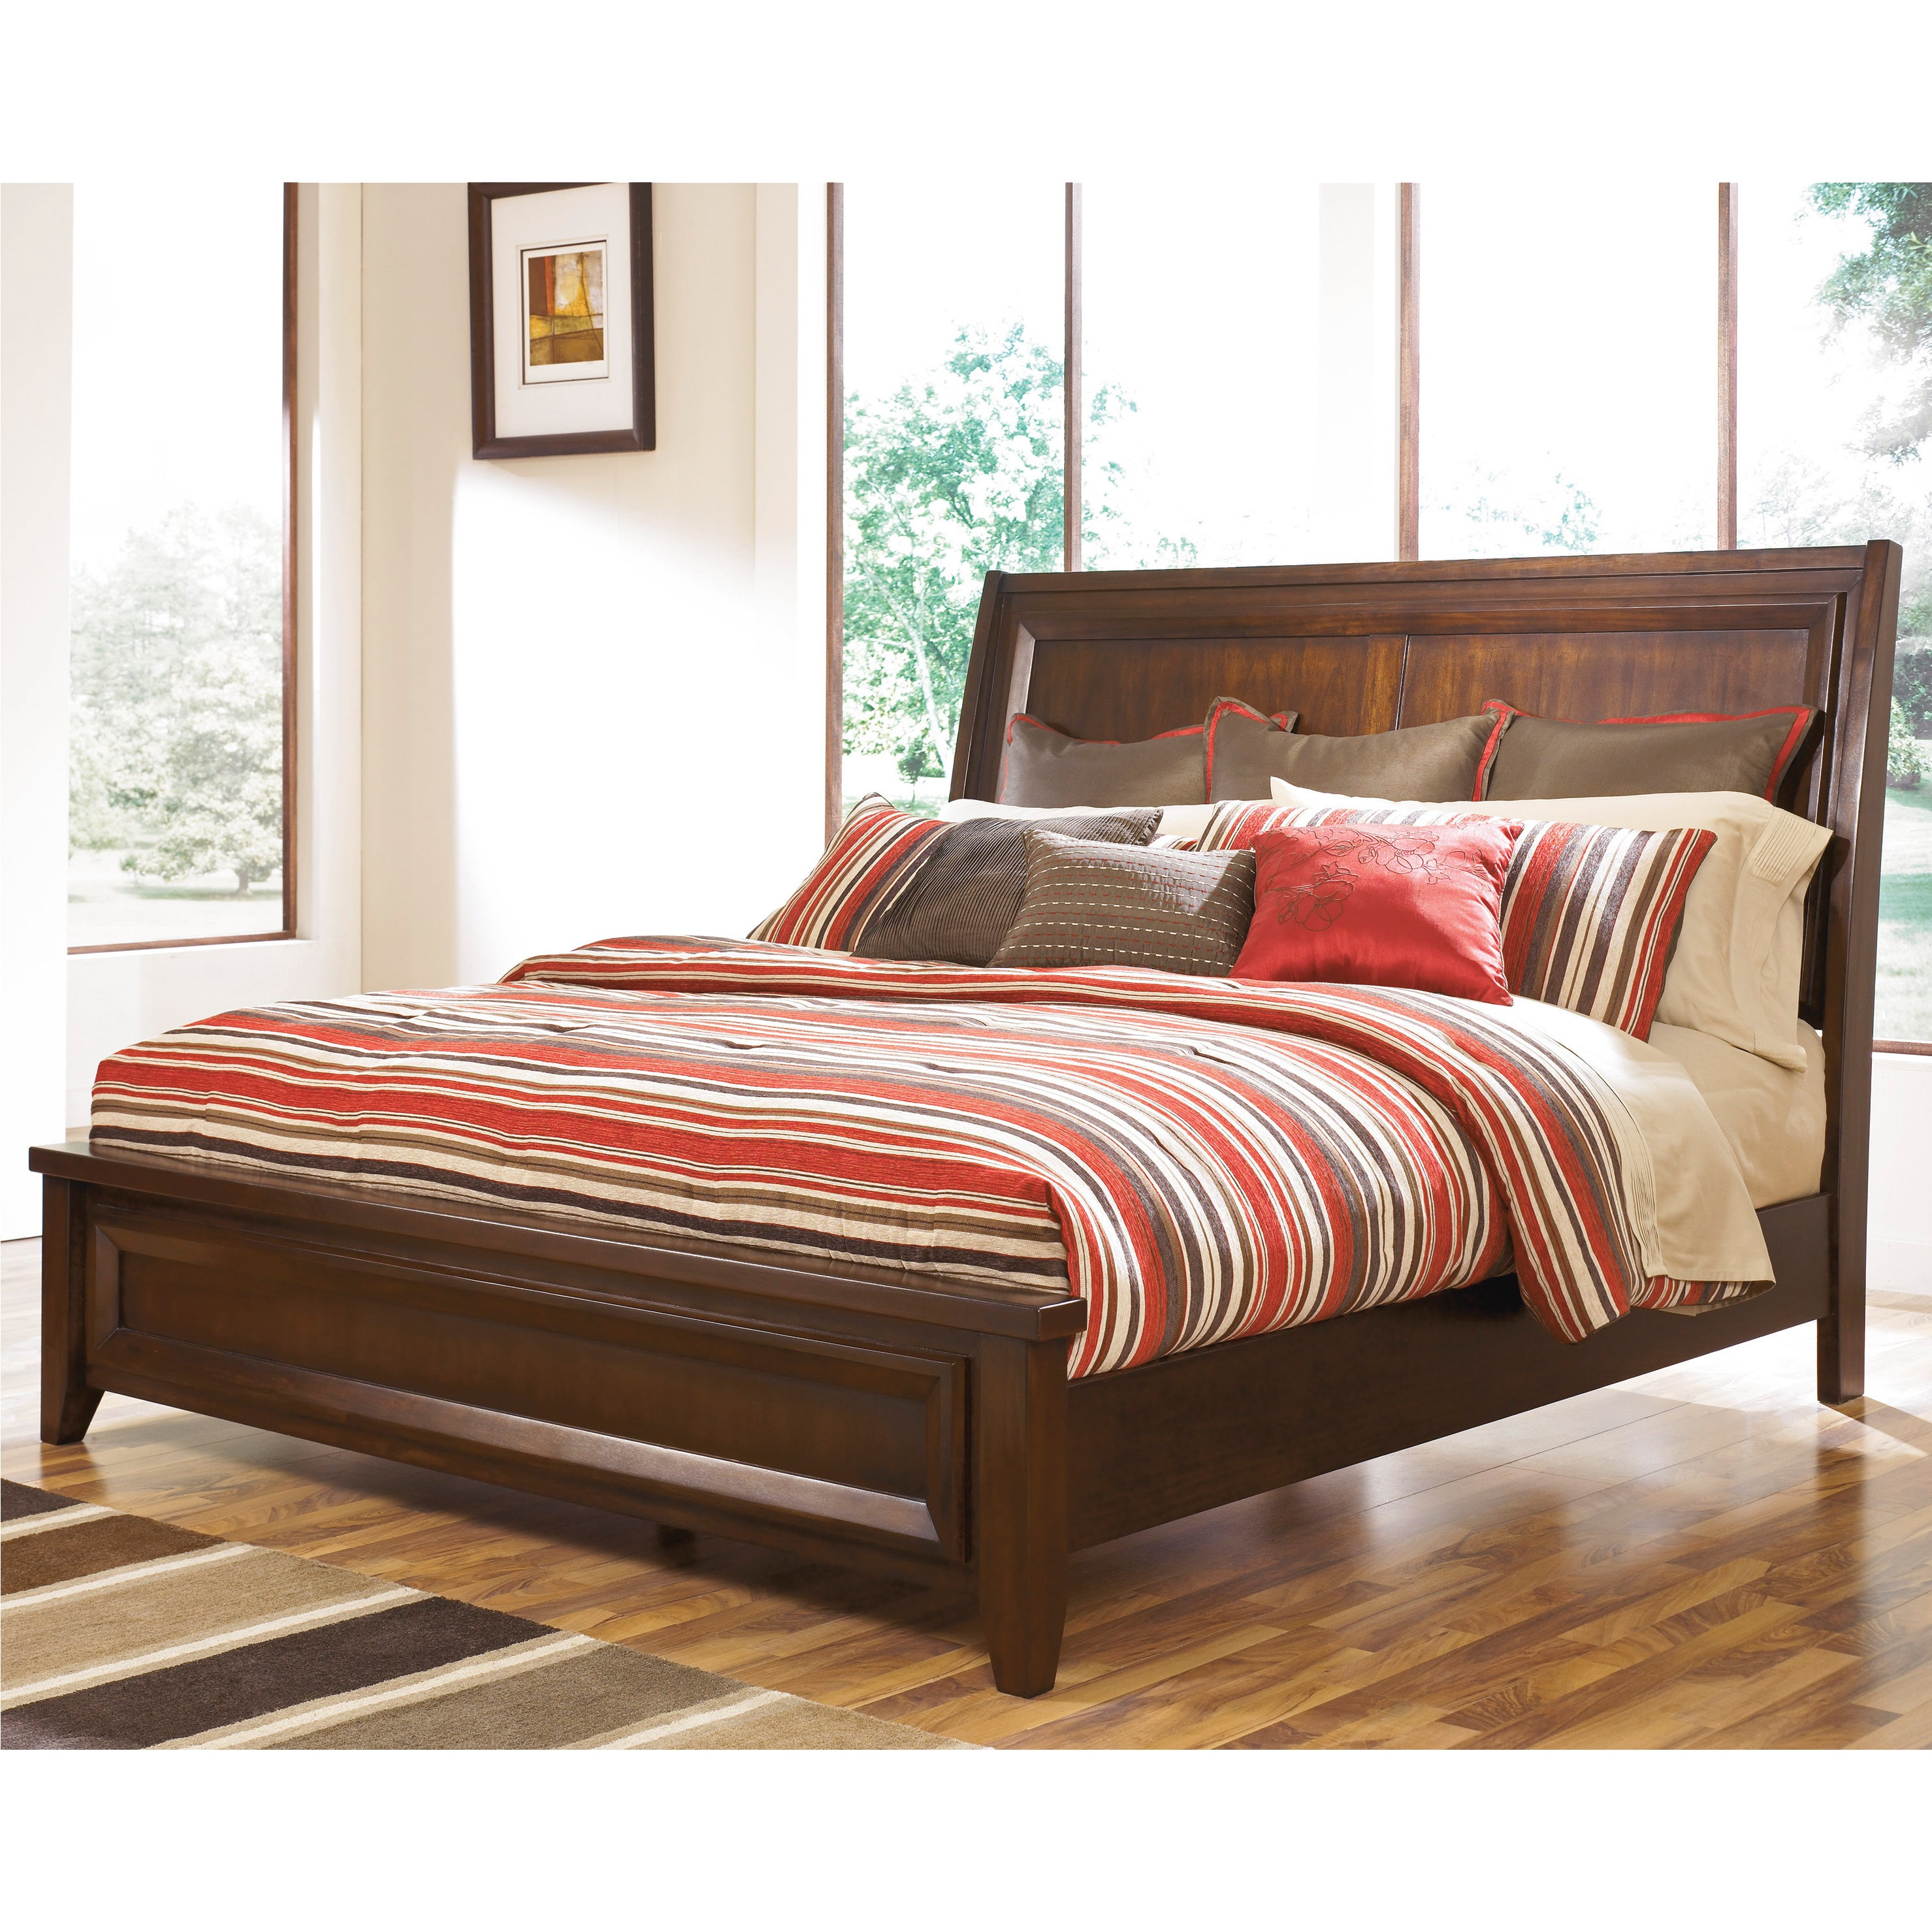 Ashley Holloway Brown King Size Bed